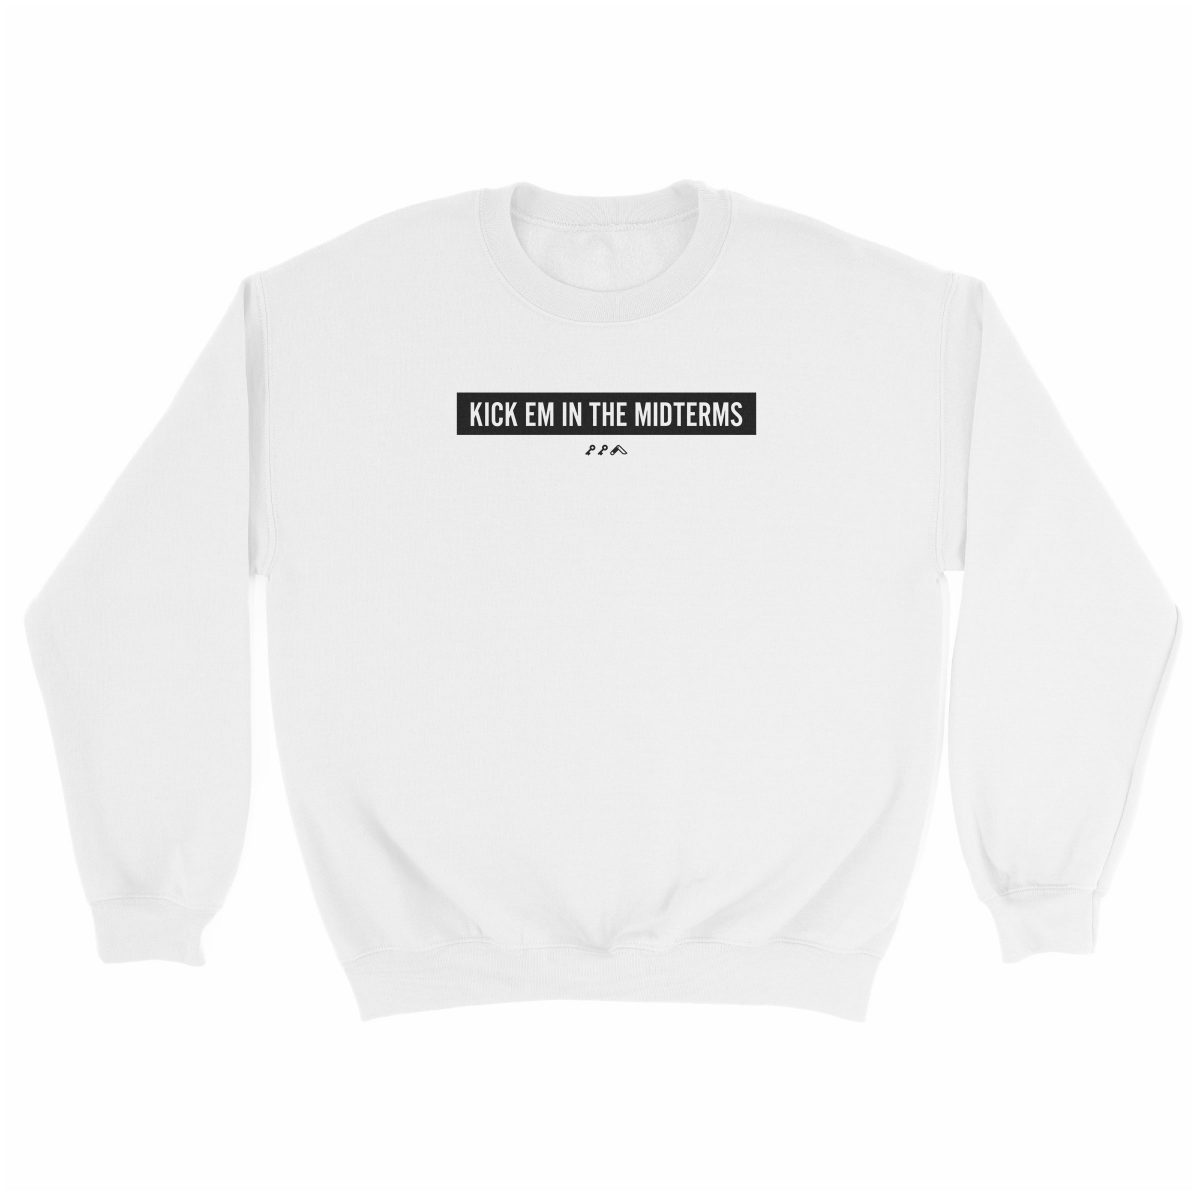 """KICK EM IN THE MIDTERMS"" funny political sweatshirt in white"